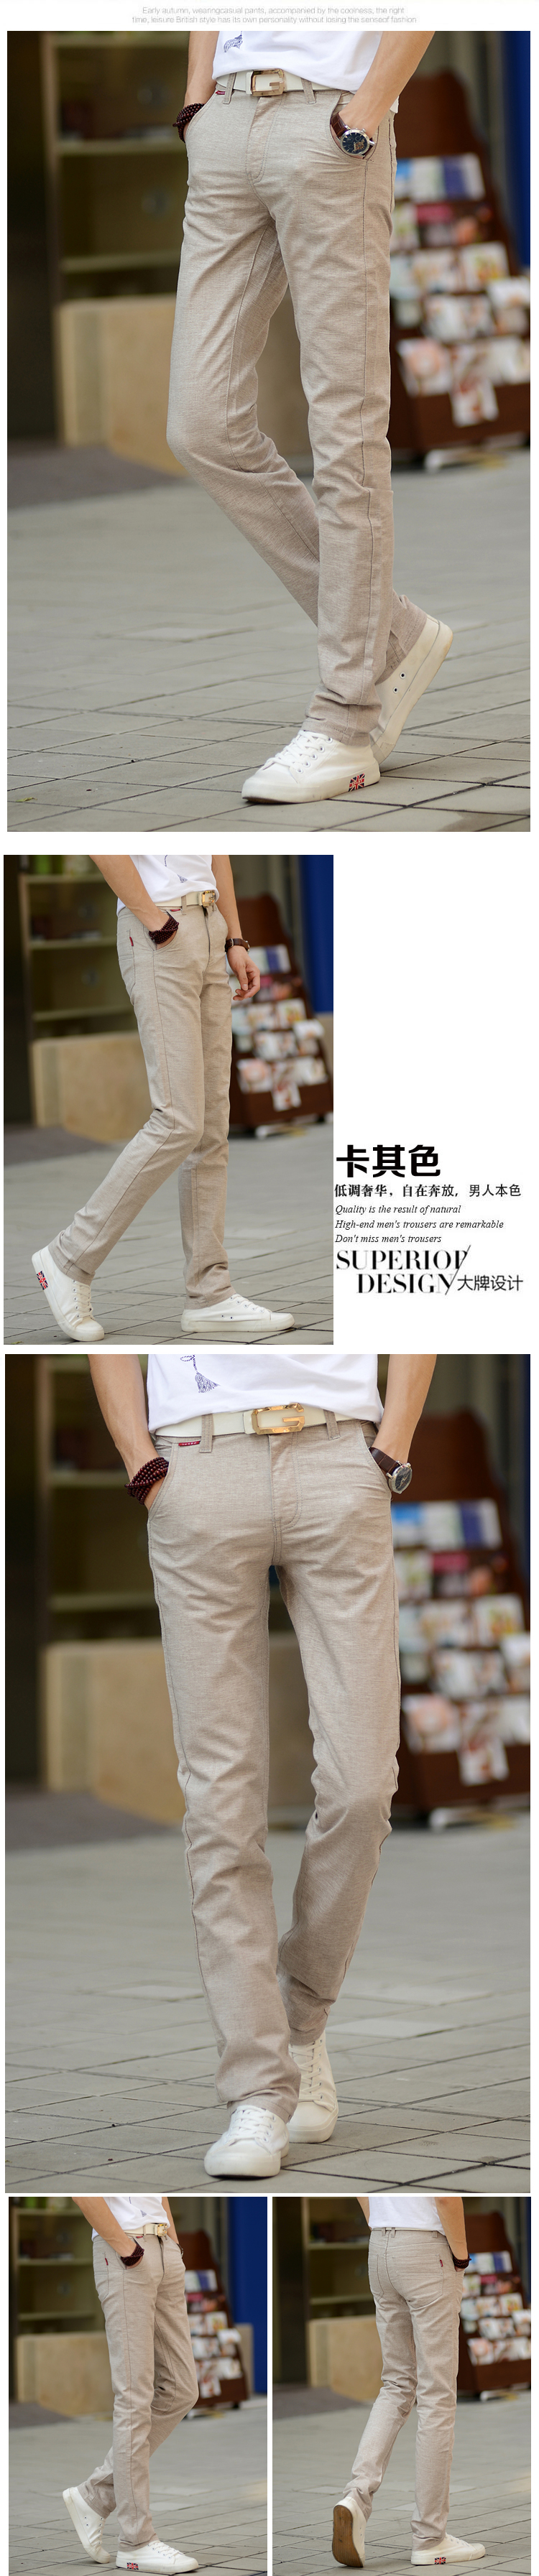 HTB1MLDqhER1BeNjy0Fmq6z0wVXaX 2019 New Men Fashion Summer Korea Slim Fit Straight Linen Cotton Thin Business Trousers Pants Male Casual Pants Import Clothes